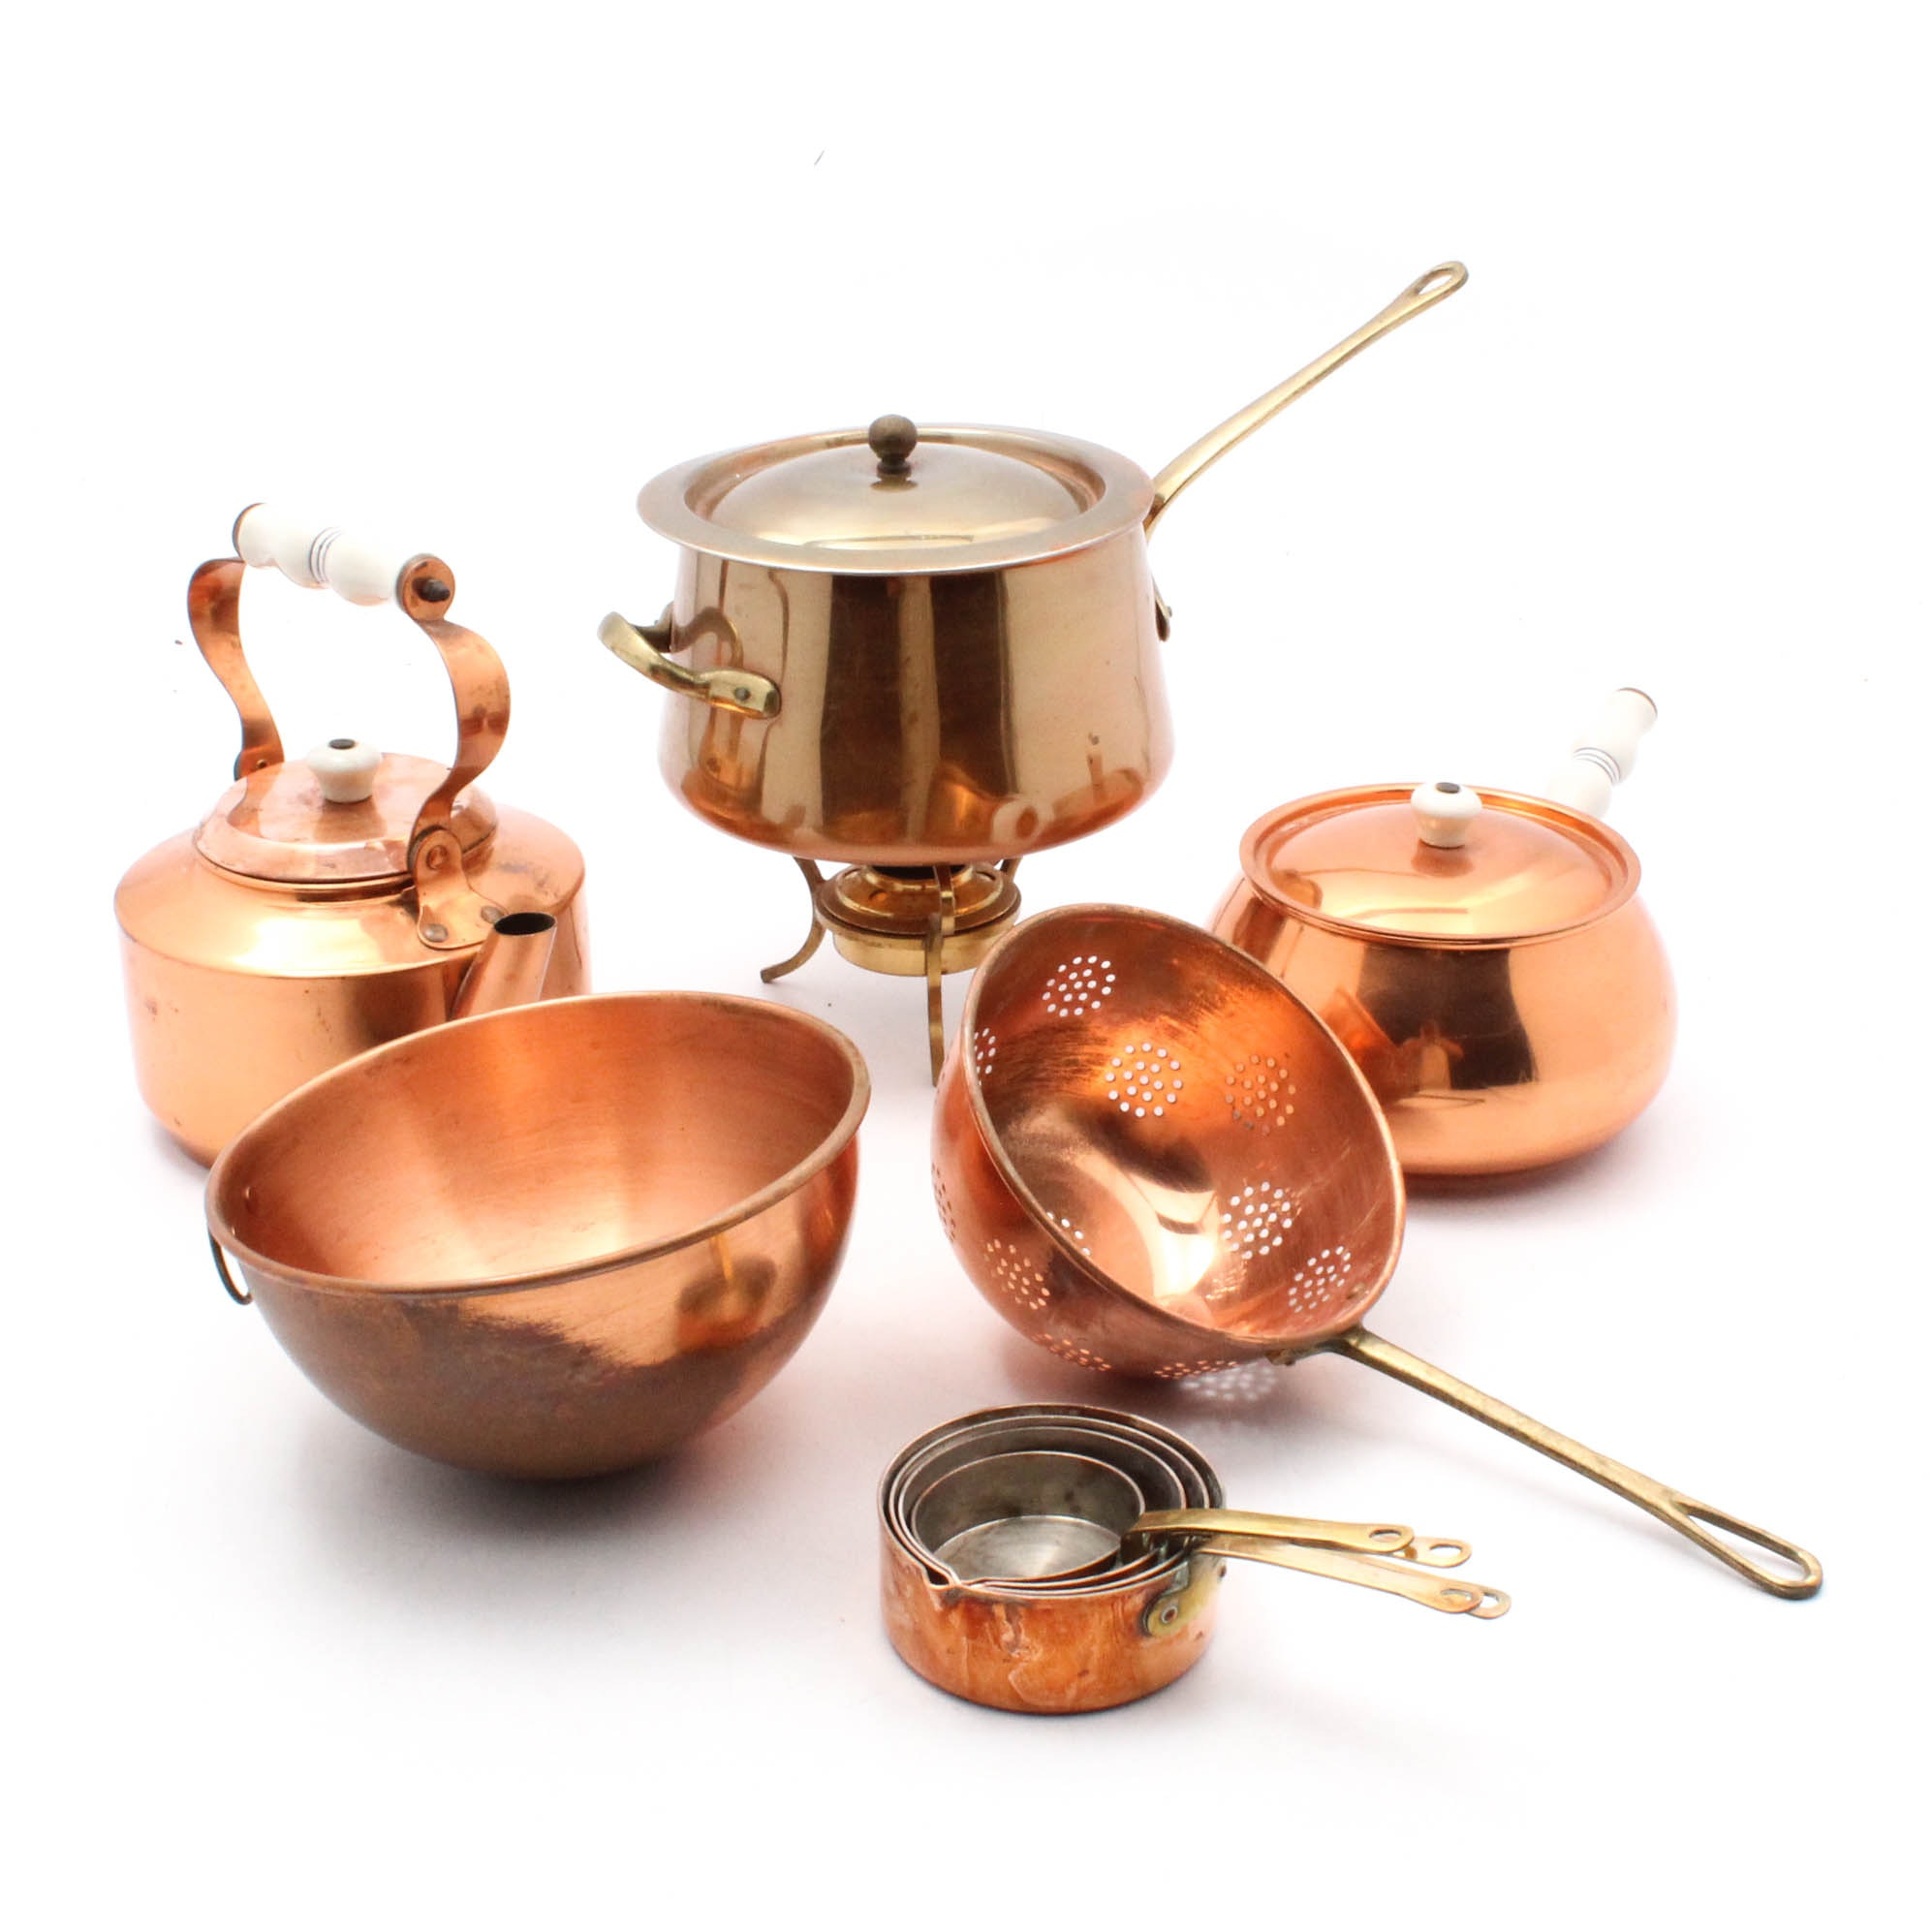 Copper Cookware and Teapot